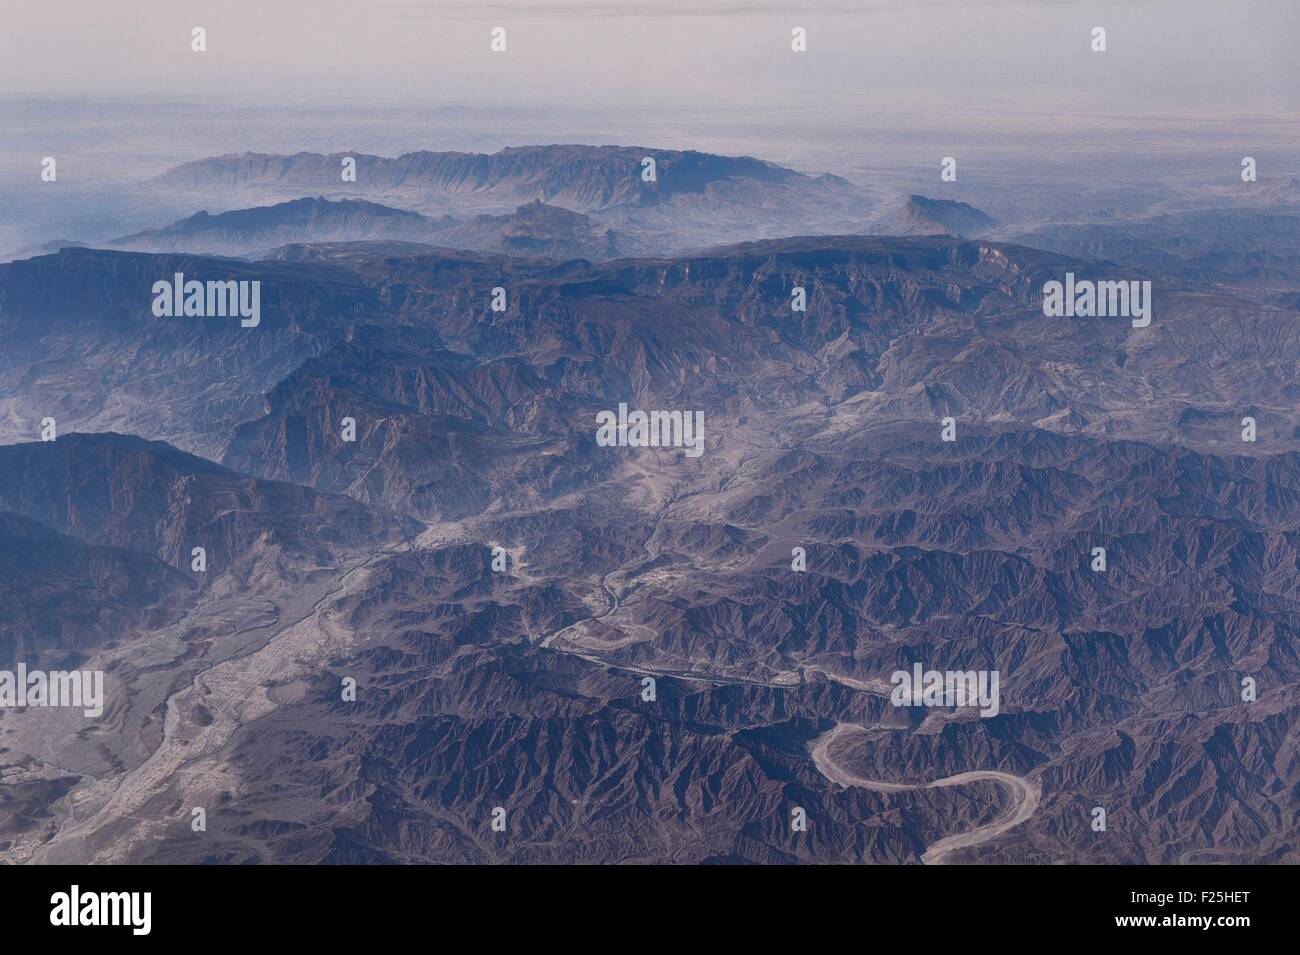 Sultanate of Oman, north Coast towards the Jebel Shams (aerial view) - Stock Image